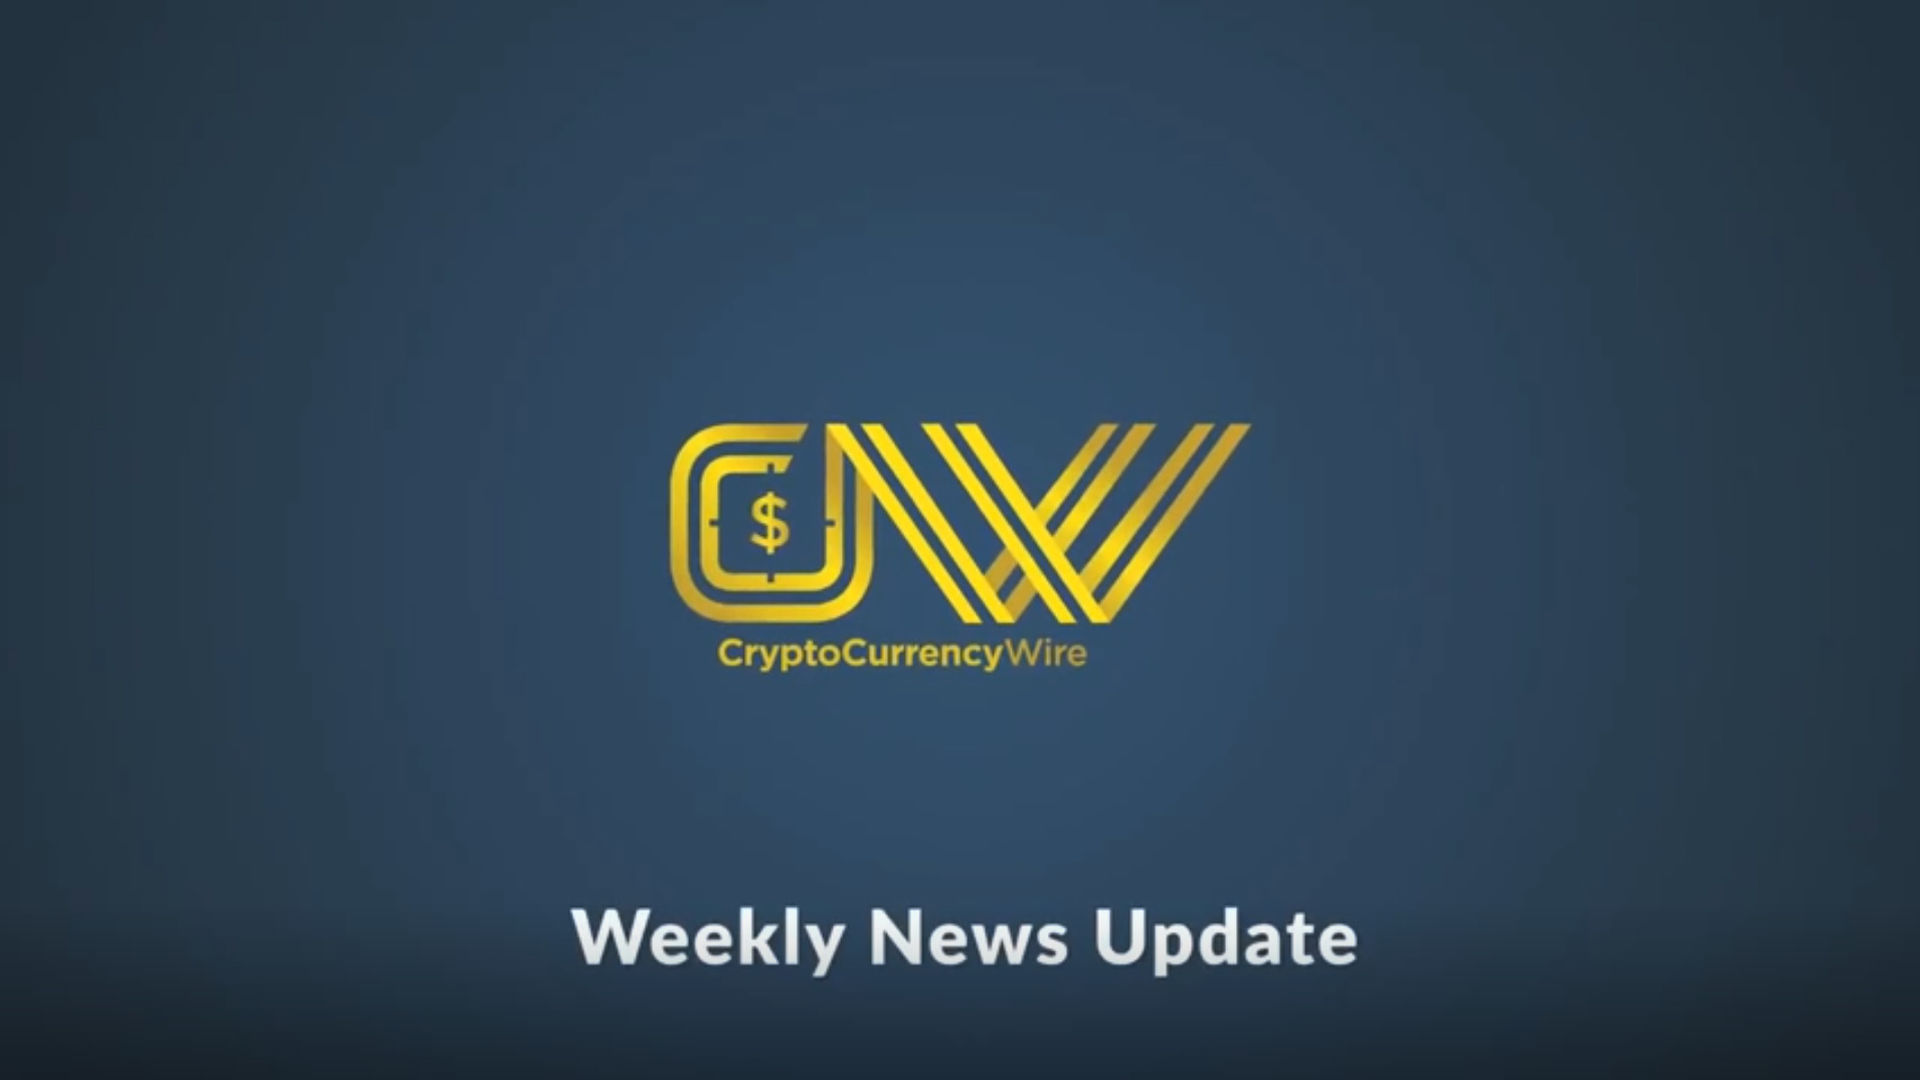 Is The Coronavirus Brutal for Bitcoin?   CryptoCurrencyWire on The Wild West Crypto Show   Episode 94